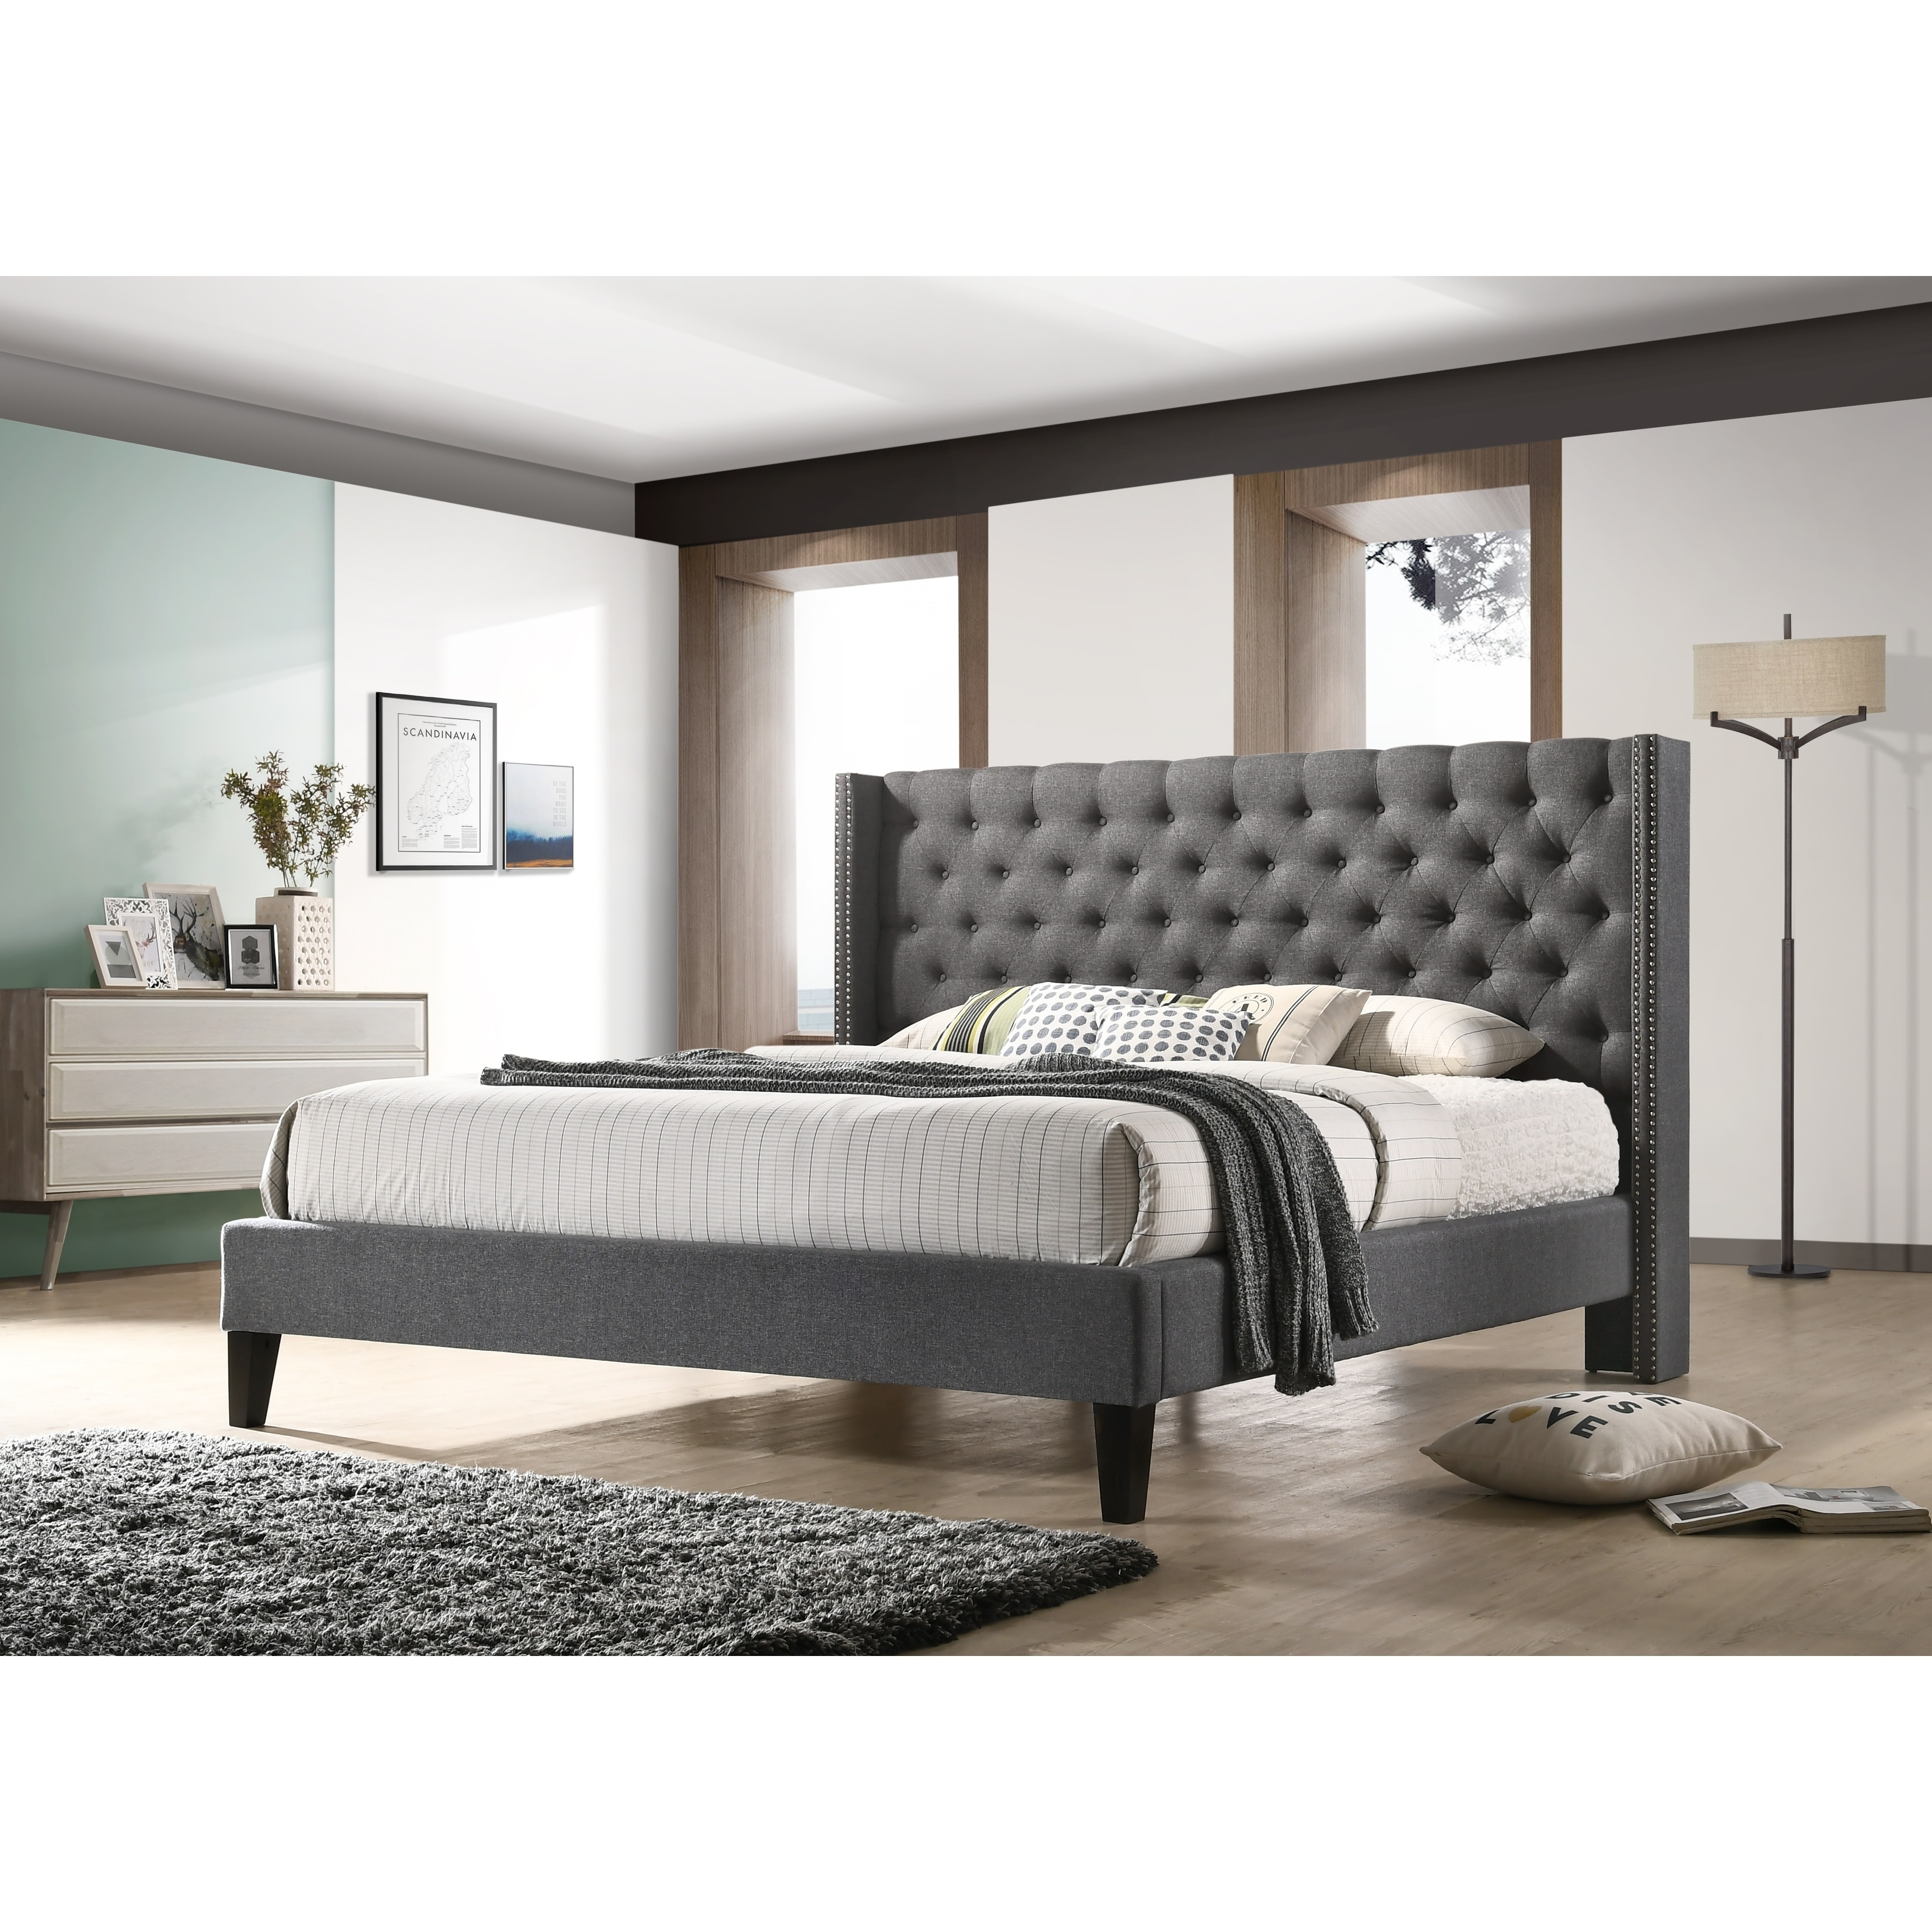 luxeo Altozzo Pacifica King-size Tufted Grey Fabric Uphol...